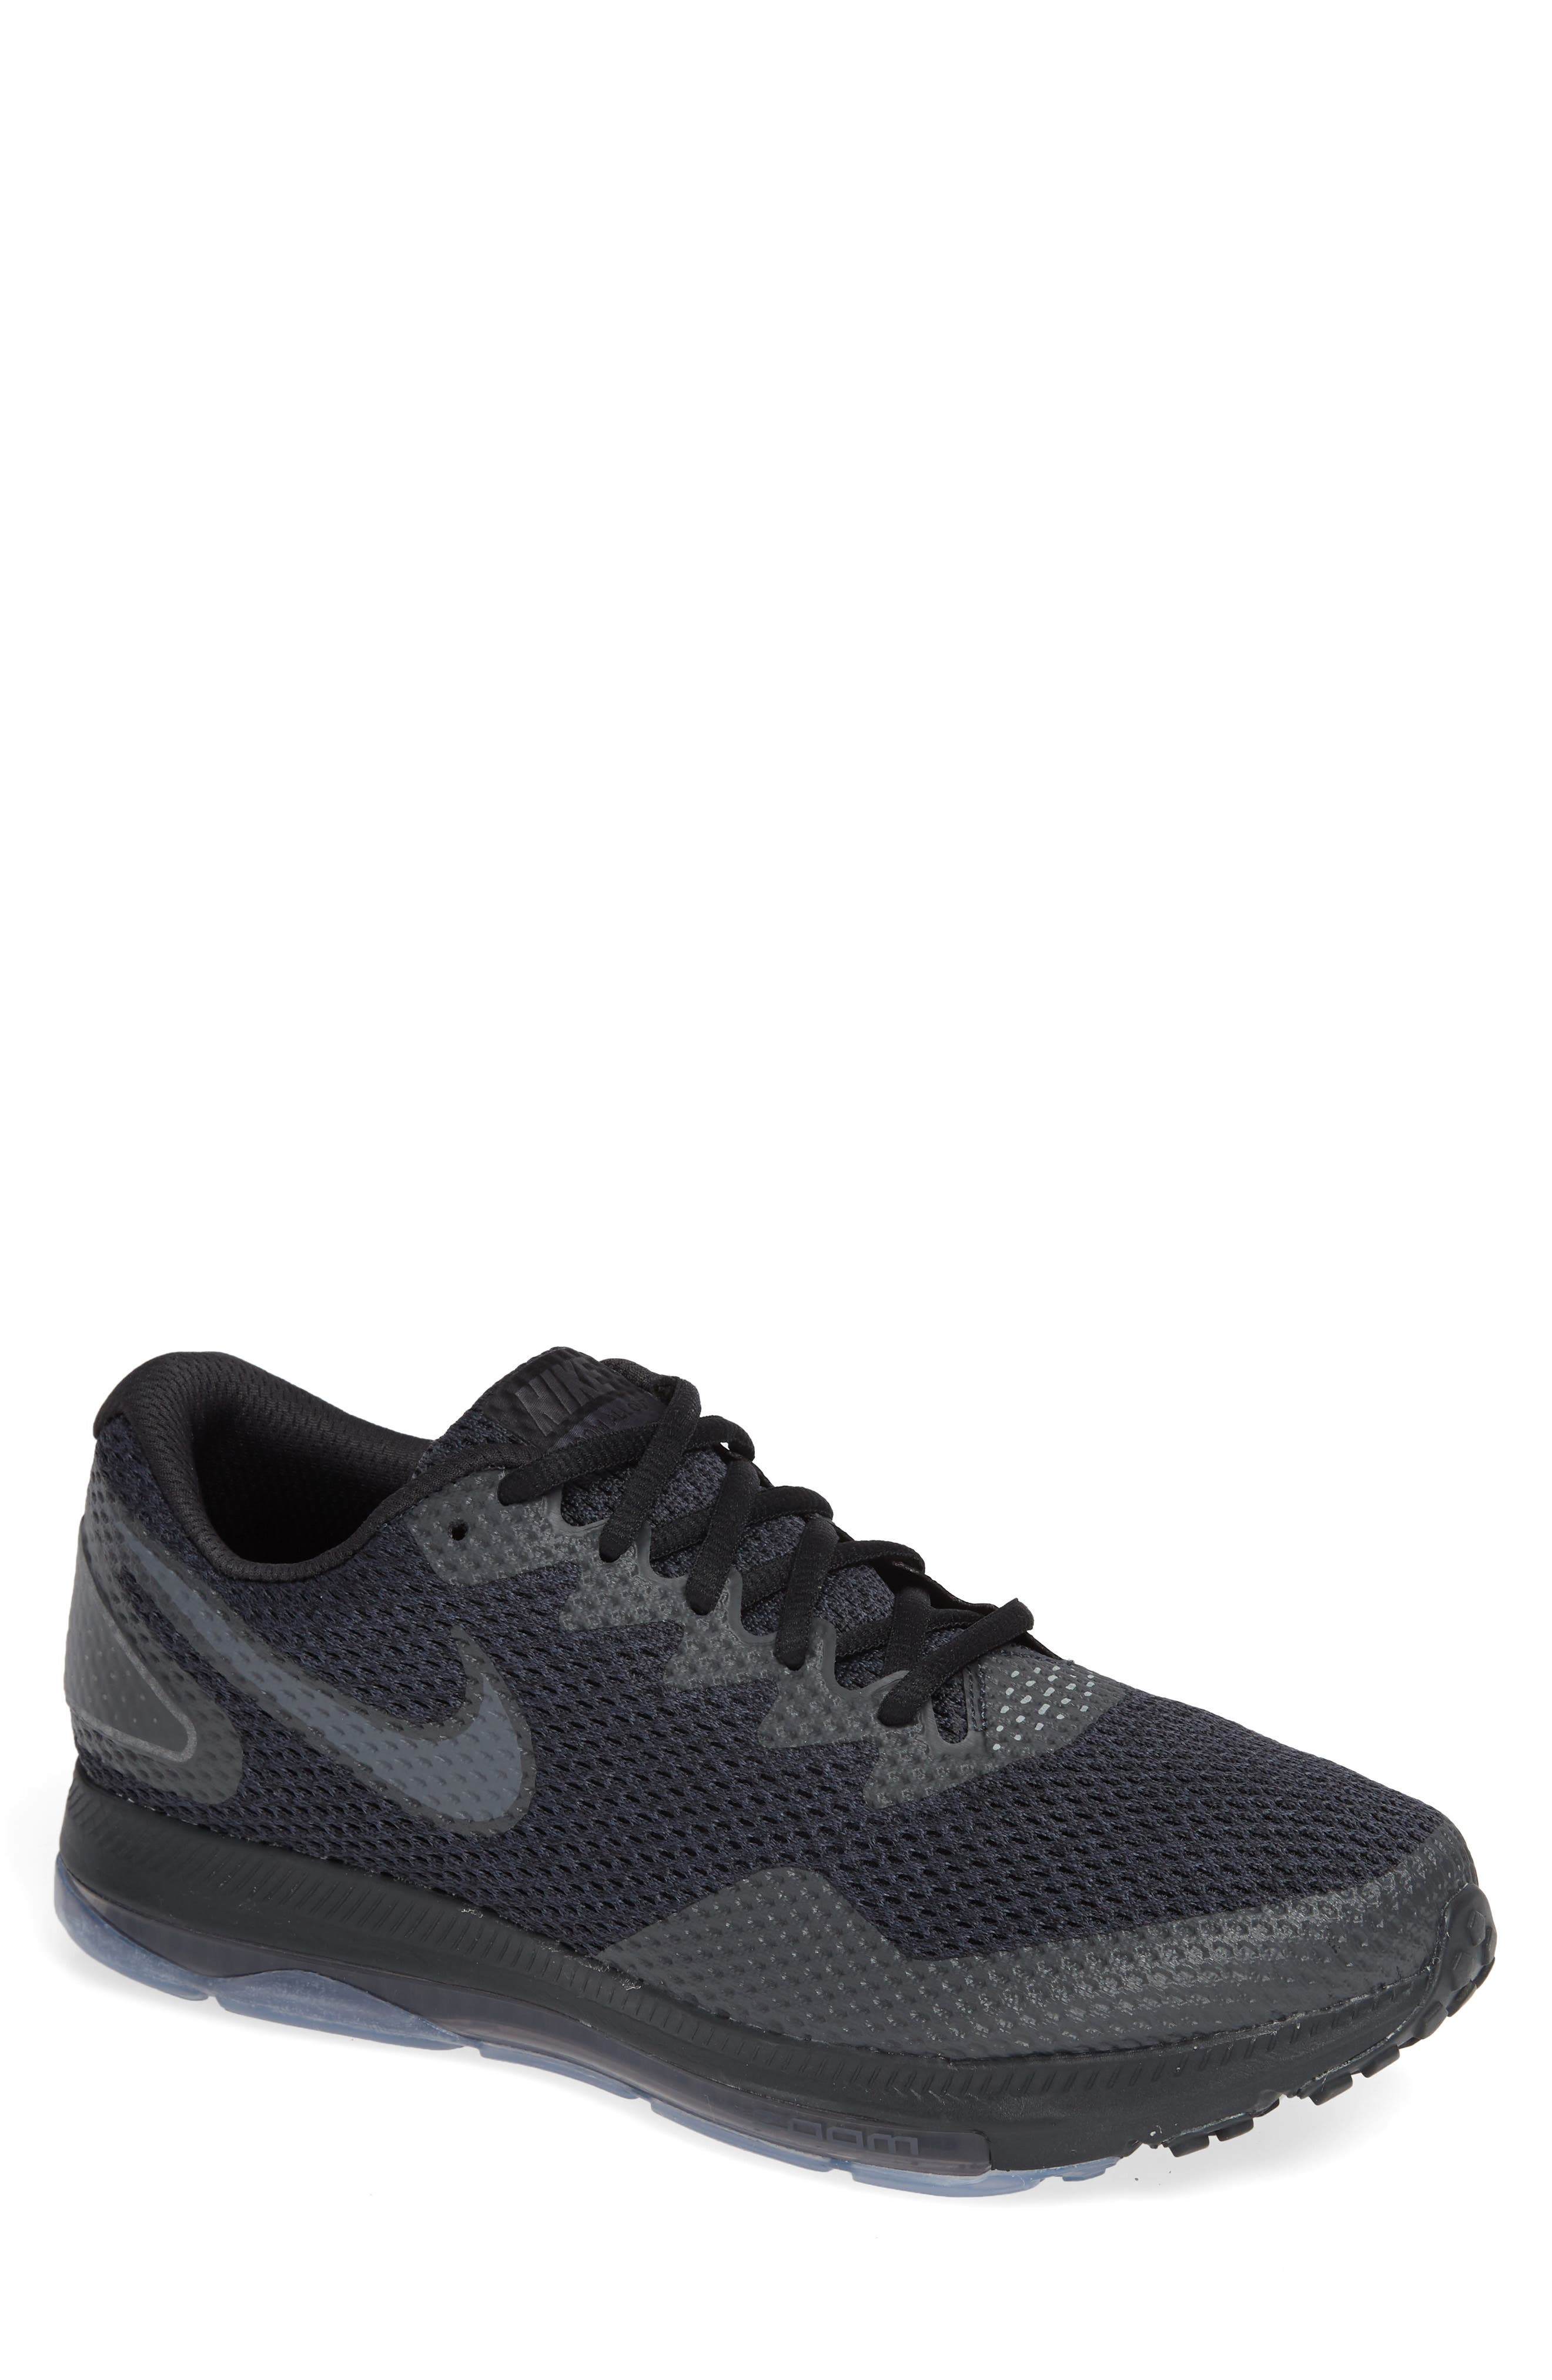 Zoom All Out Low 2 Running Shoe,                             Main thumbnail 1, color,                             Black/ Dark Grey/ Anthracite